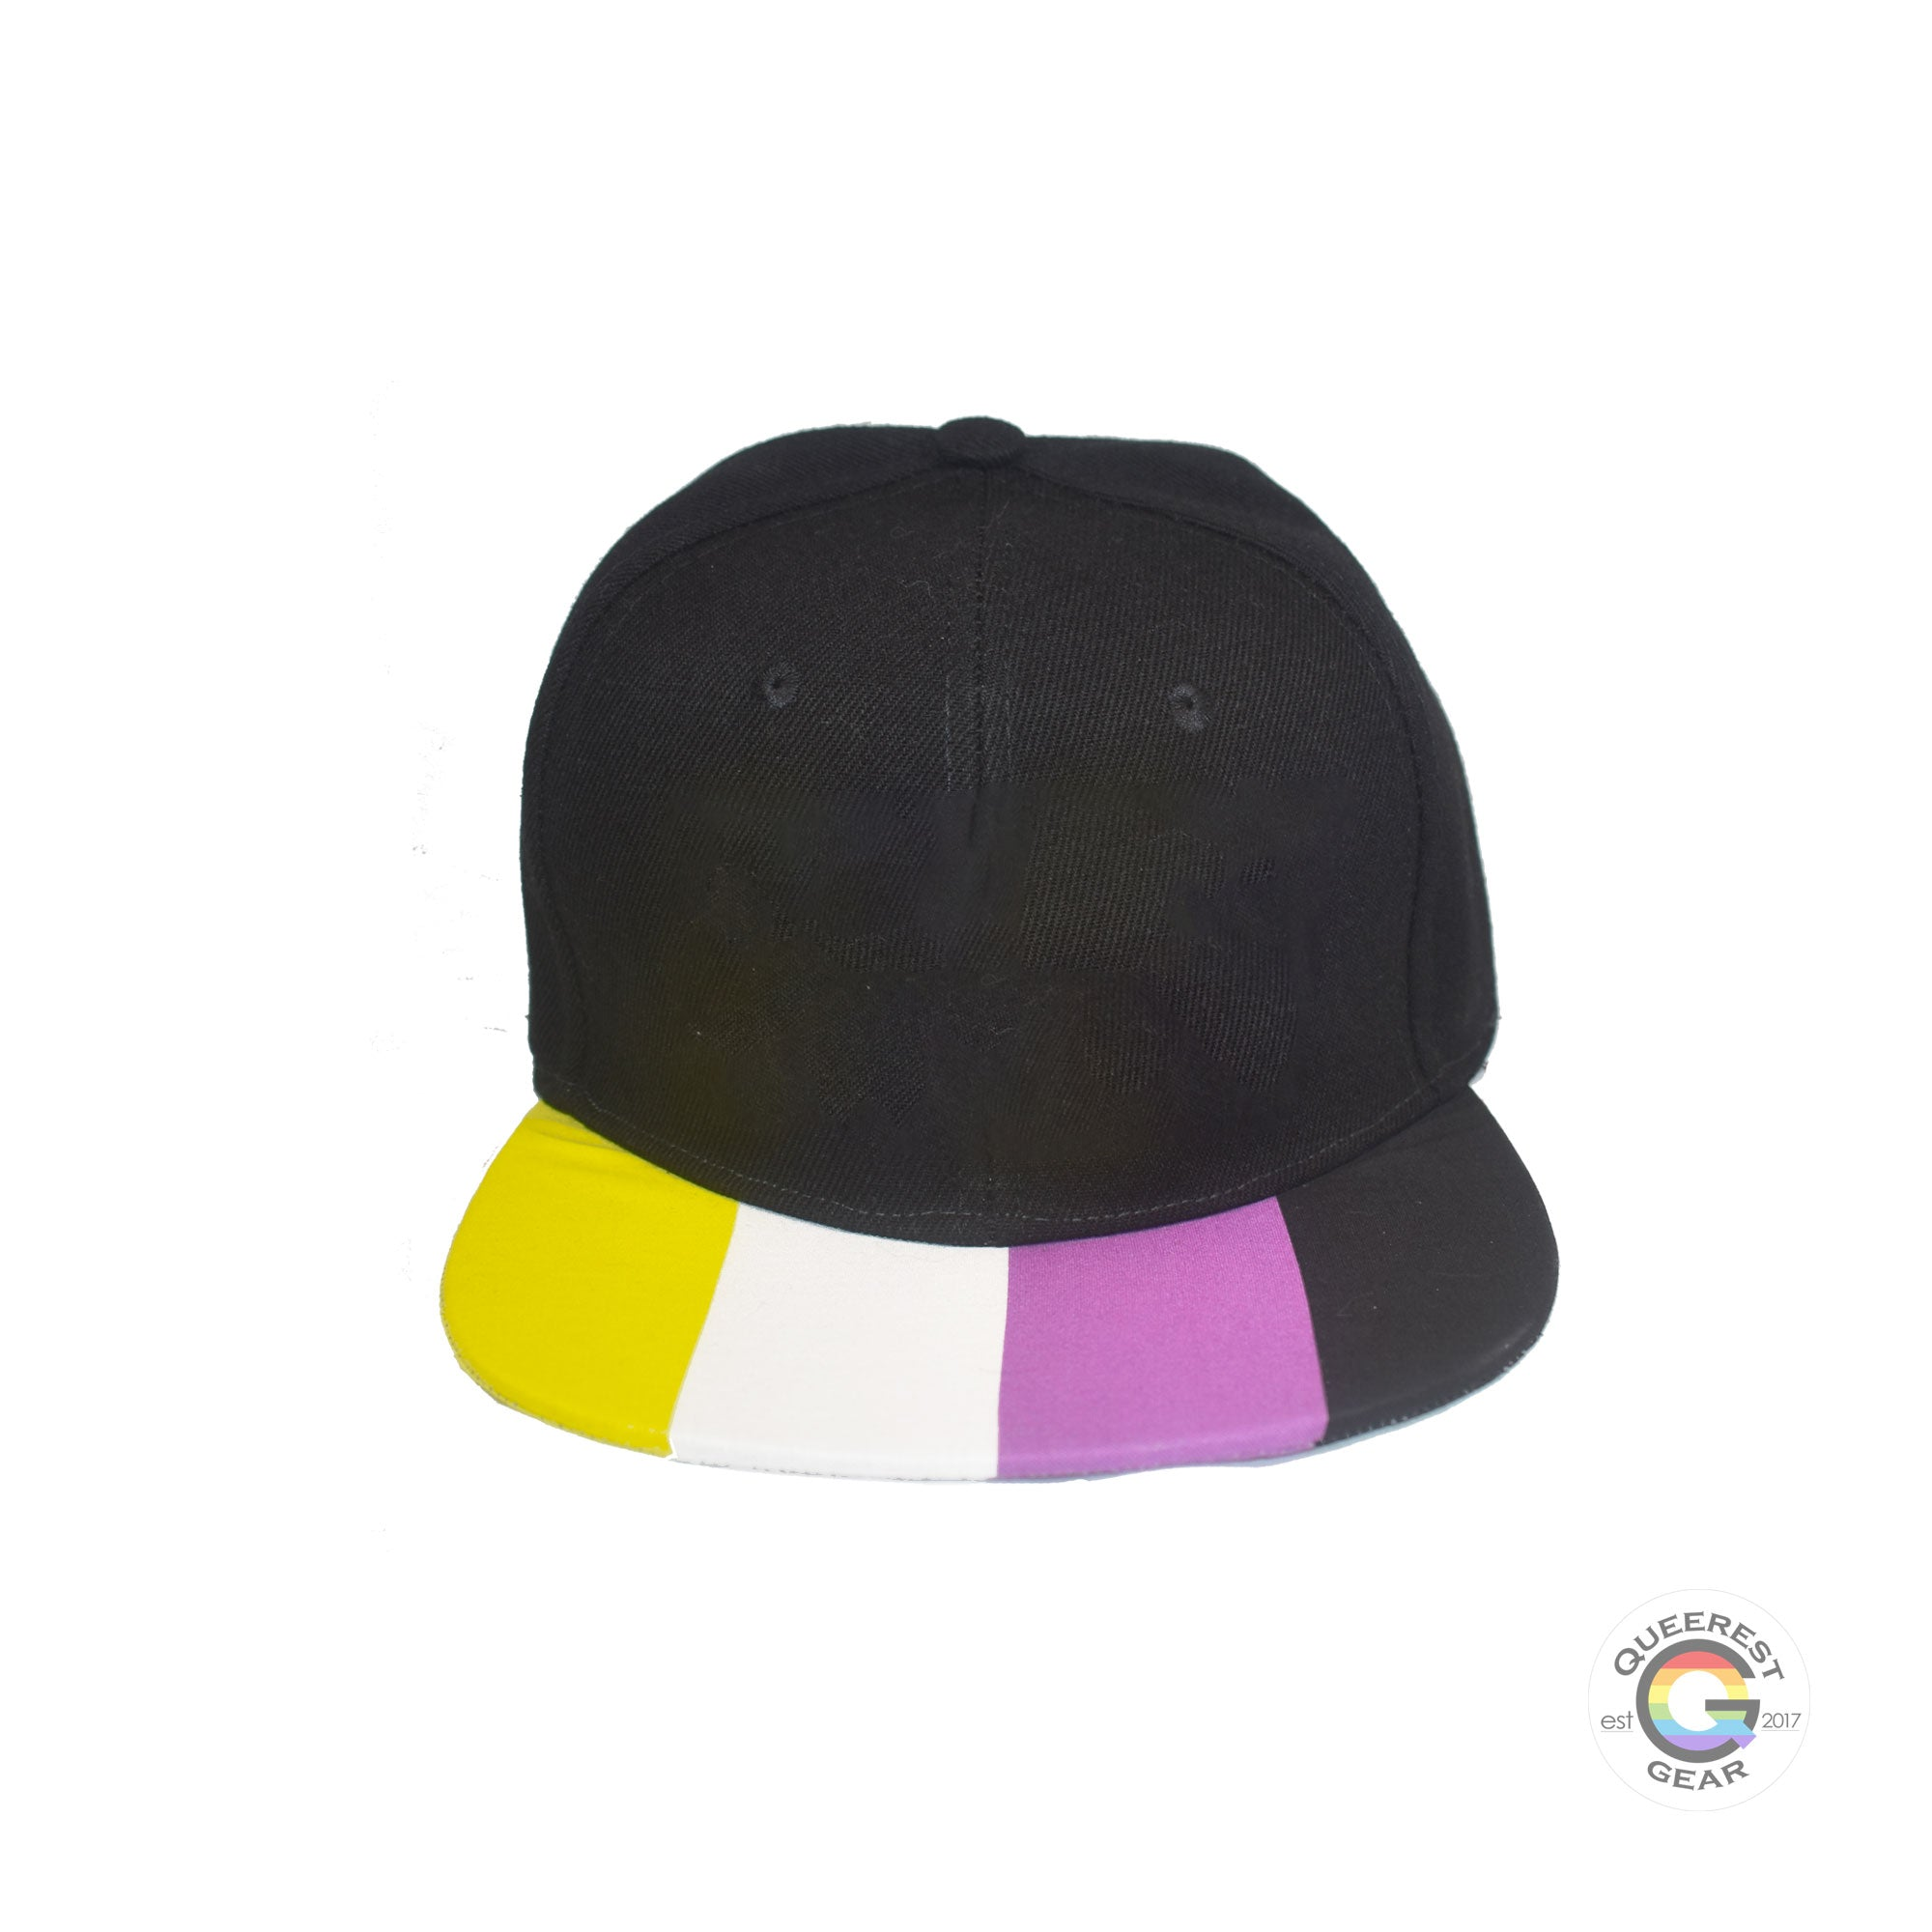 Discreet Textless Pride Hats (multiple brim flags options)